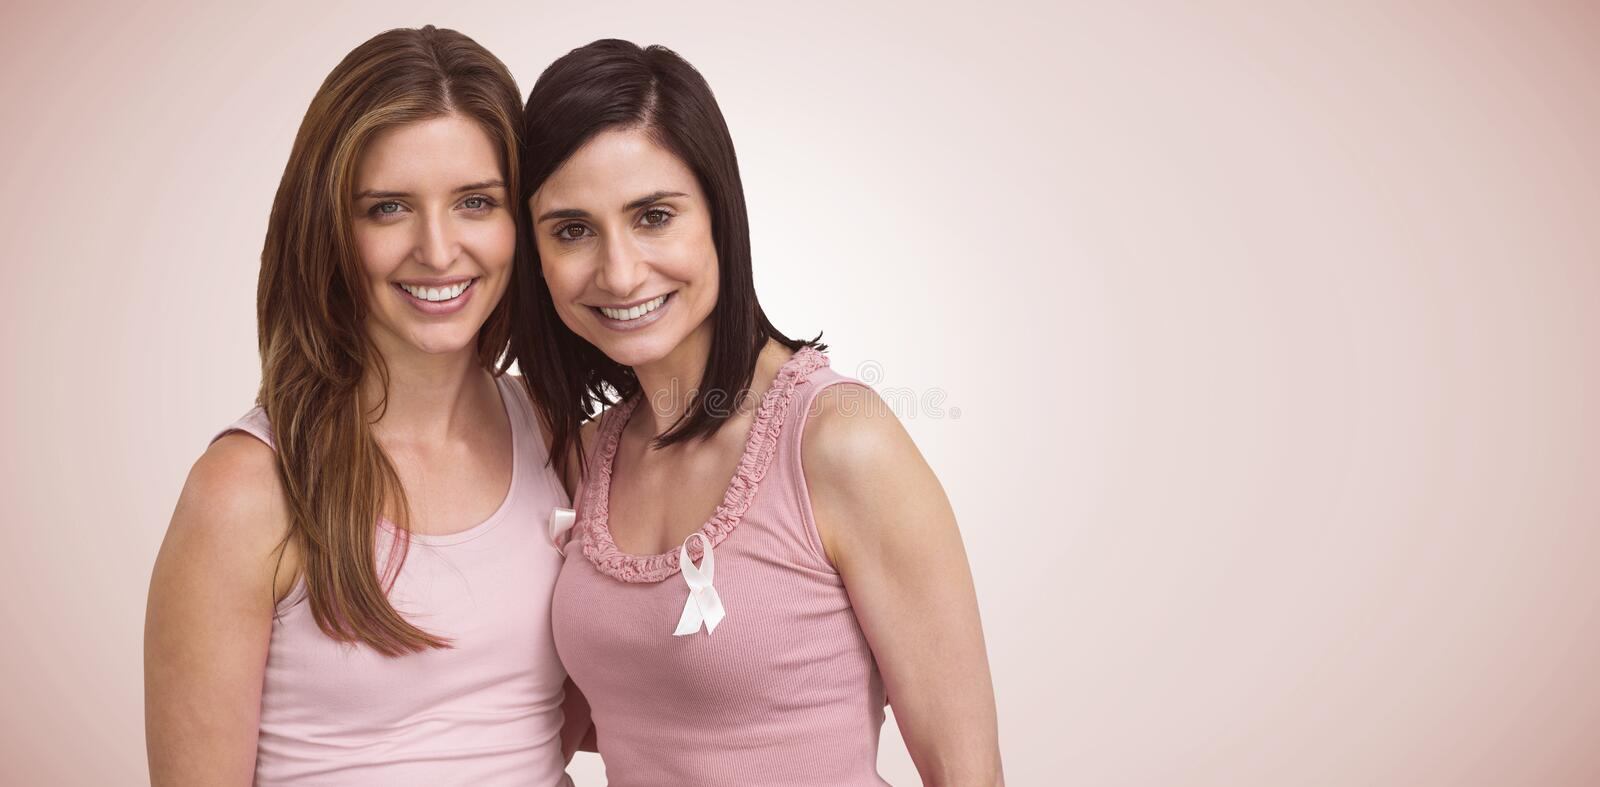 Composite image of smiling women in pink outfits posing for breast cancer awareness. Smiling women in pink outfits posing for breast cancer awareness against stock image